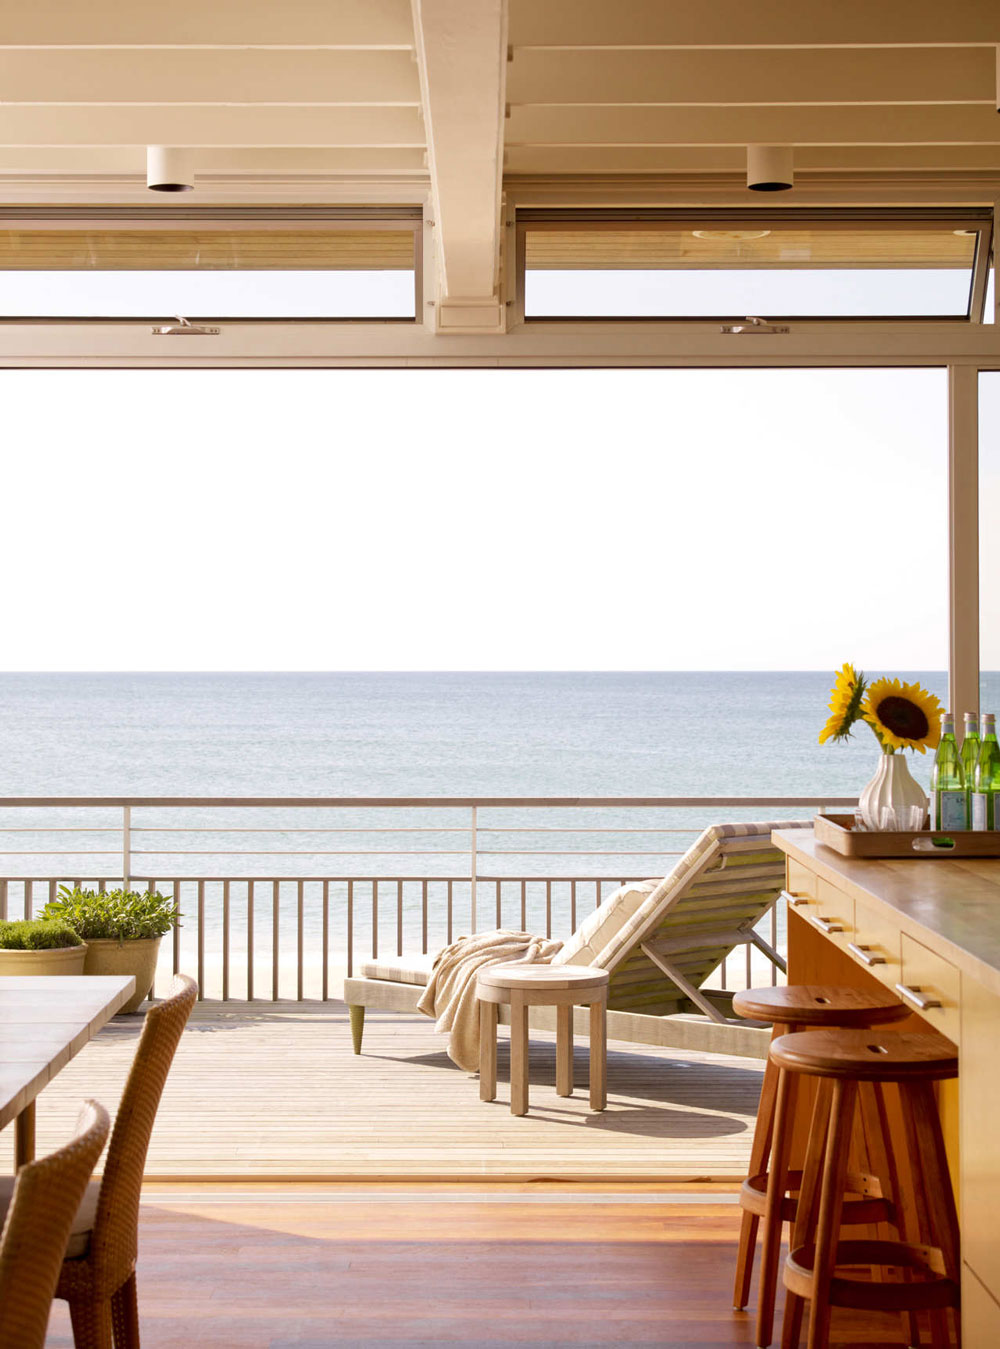 Balcony, Ocean Views, Surfside House in Bridgehampton, New York by Stelle Architects